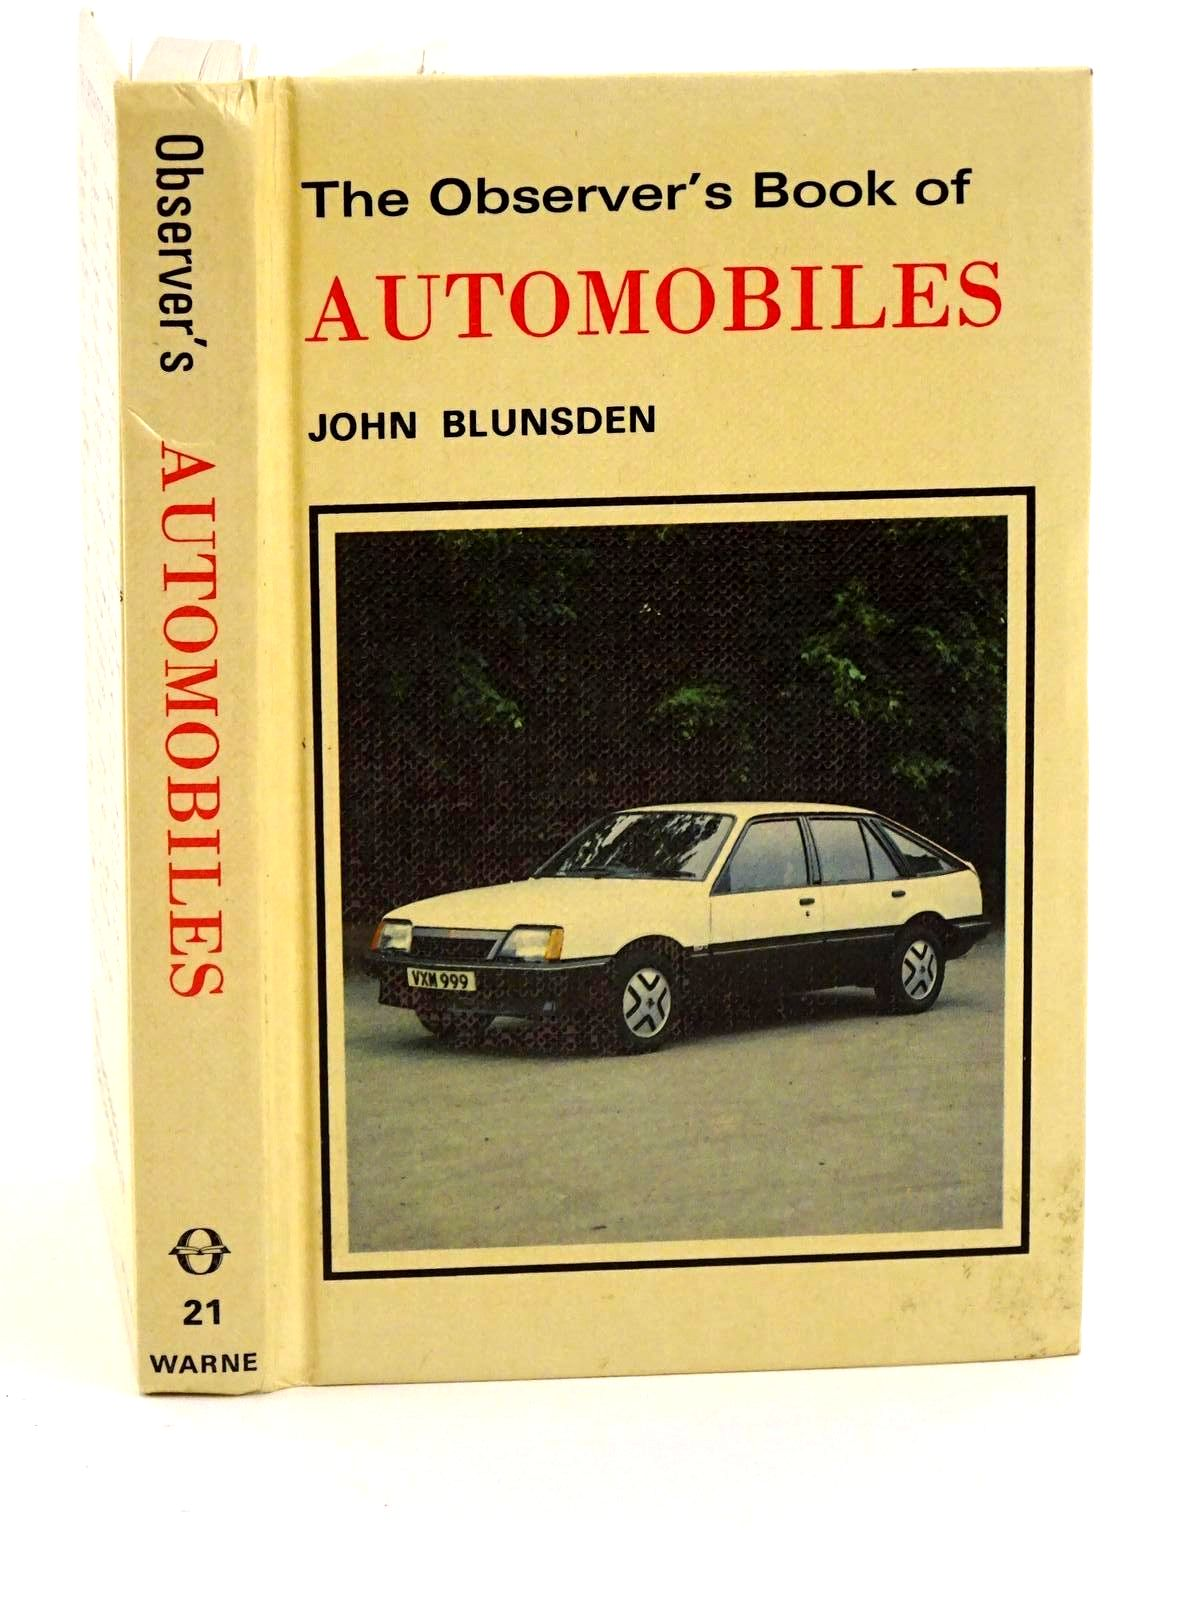 Photo of THE OBSERVER'S BOOK OF AUTOMOBILES written by Blunsden, John published by Frederick Warne (Publishers) Ltd. (STOCK CODE: 1318272)  for sale by Stella & Rose's Books